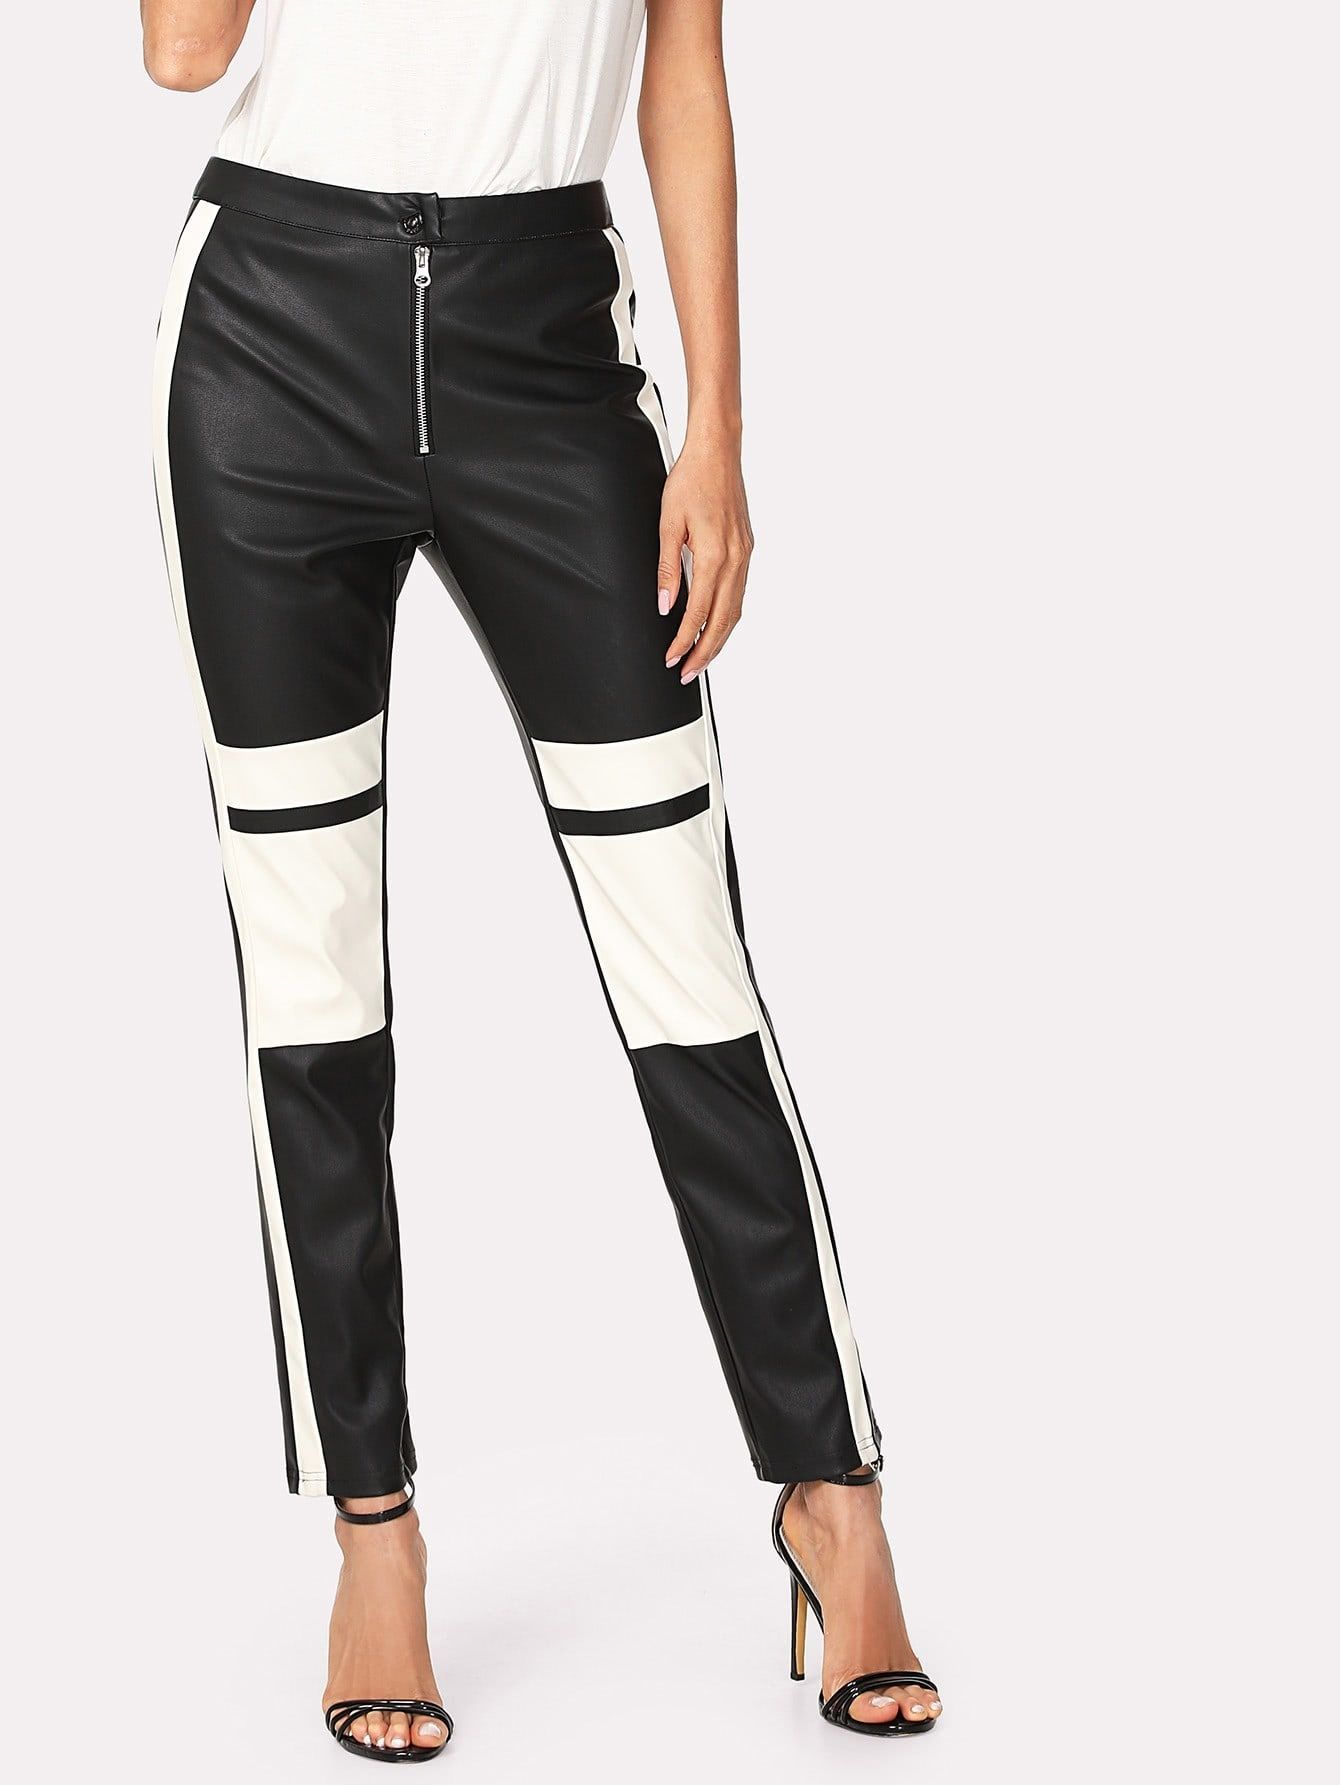 866b66e700 Two Tone Faux Leather Pants in 2019 | 1 | White leather pants, Faux ...